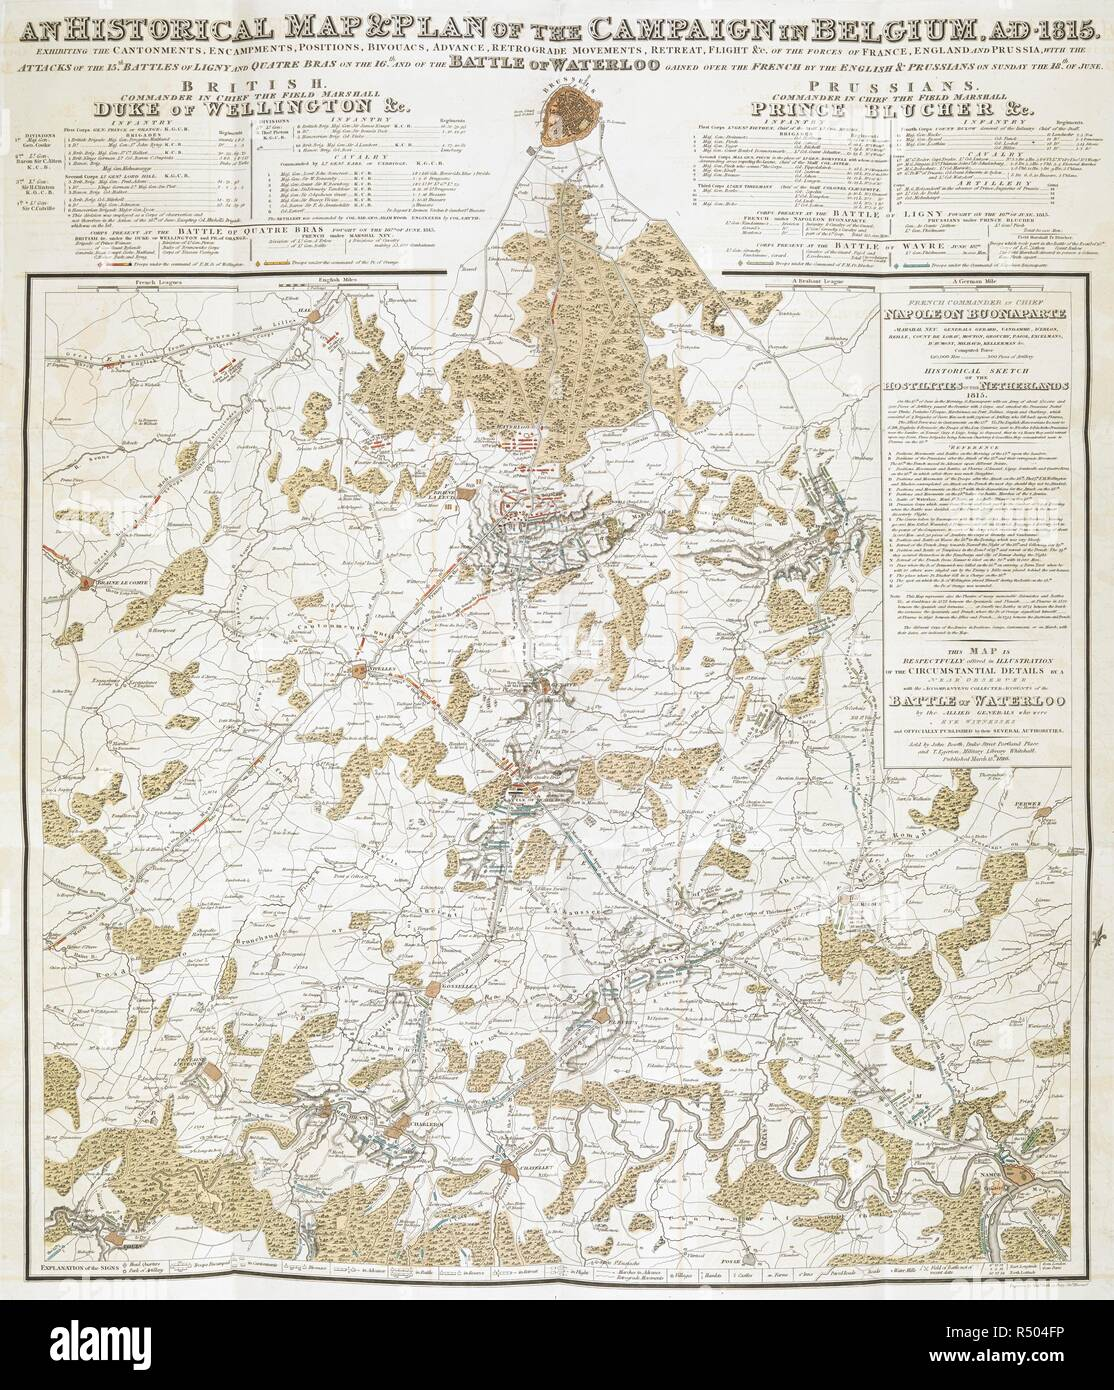 An historical map & plan of the campaign in Belgium, A.D.1815 ... with the attacks of the 15th. Battles of Ligny and Quatre Bras on the 16th and of the Battle of Waterloo ... The Battle of Waterloo, also of Ligny and Quatre-Bras described by ... a near observer ... [A narrative by C. A. Eaton, with a sketch by J. Waldie... from sketches by Captain G. Jones. 2 vol. John Booth; T. Egerton: London, 1817. Source: G.5651 last plate in vol.2. Author: Eaton, Charlotte Anne. - Stock Image